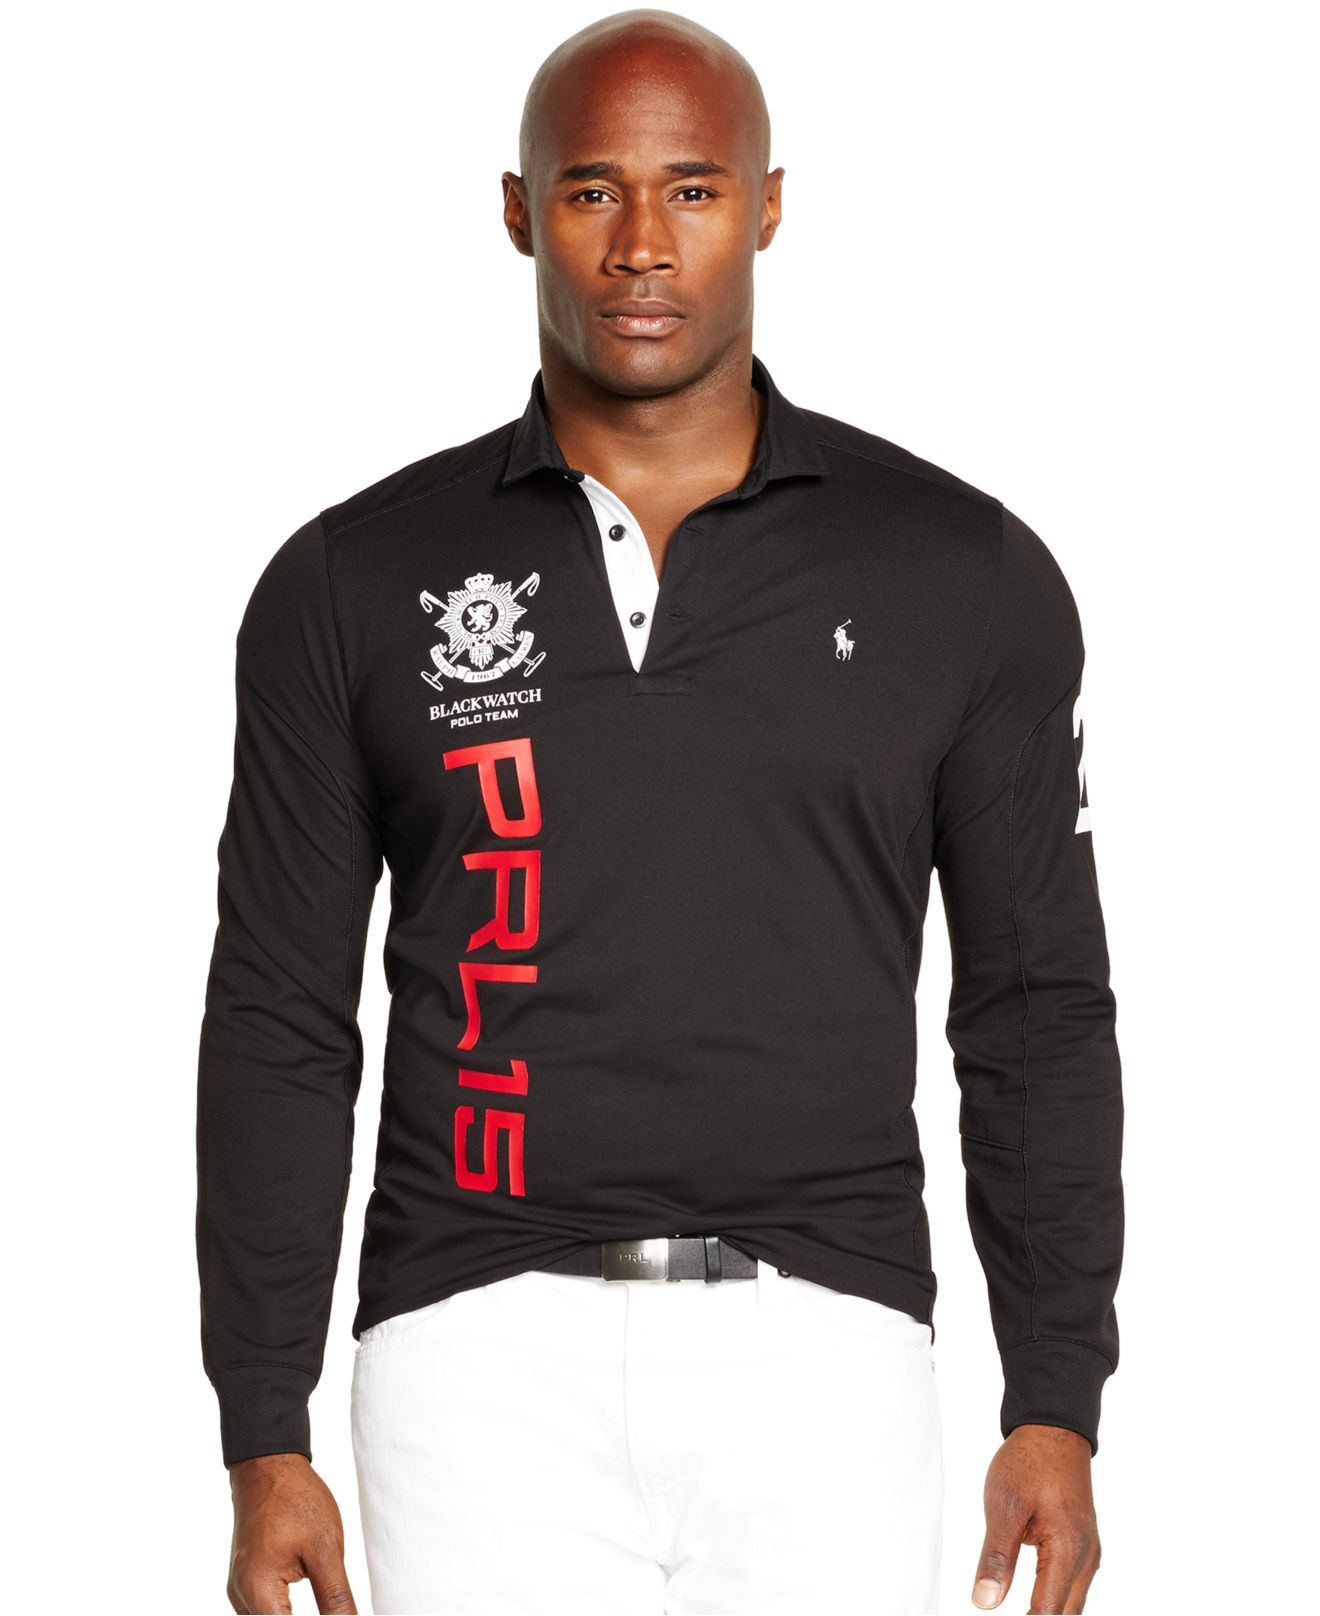 Ralph Lauren U.S. Polo,The Best Site And Huge Discount For Polo Shirts. Ralph